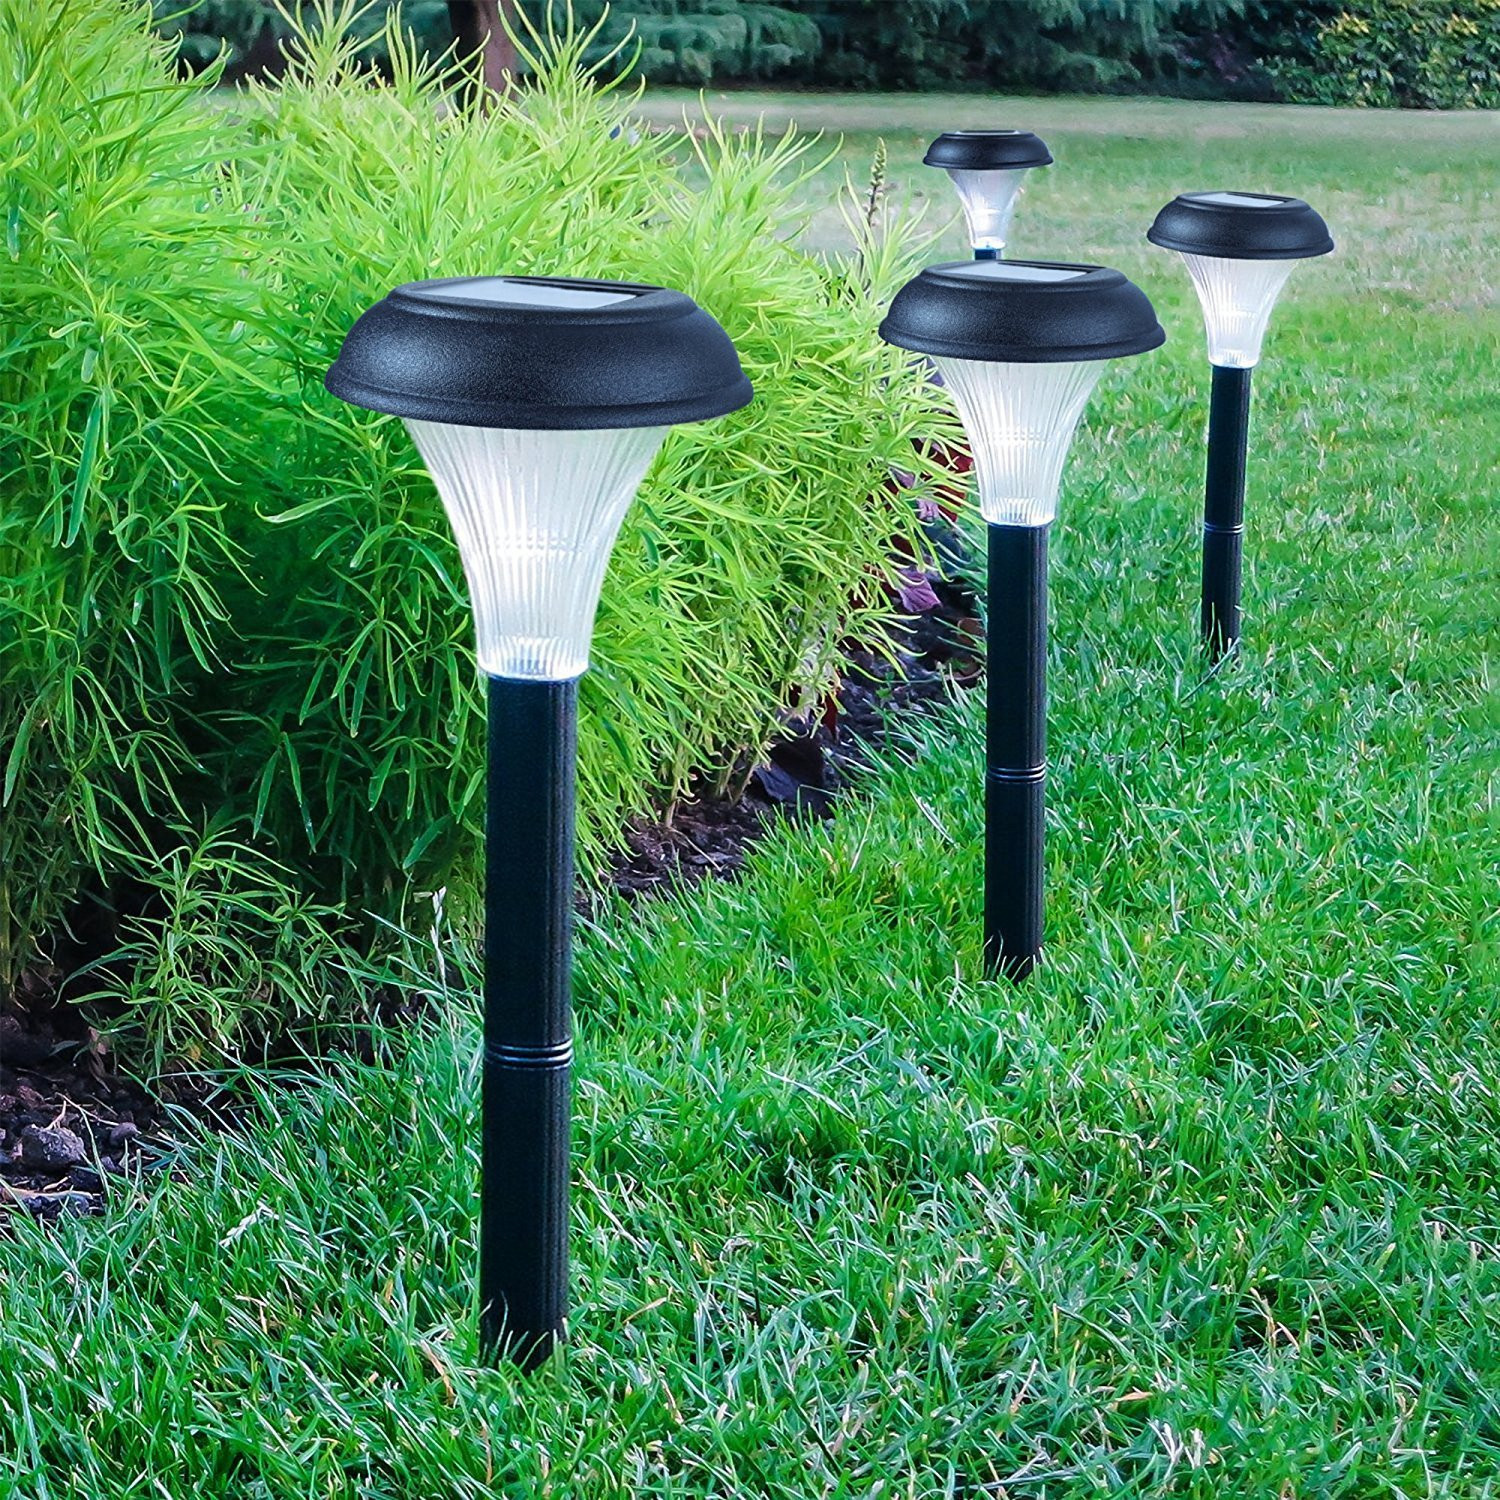 Best ideas about Best Outdoor Solar Lights . Save or Pin The 5 Best Solar LED Garden & Landscape Lights Reviewed Now.